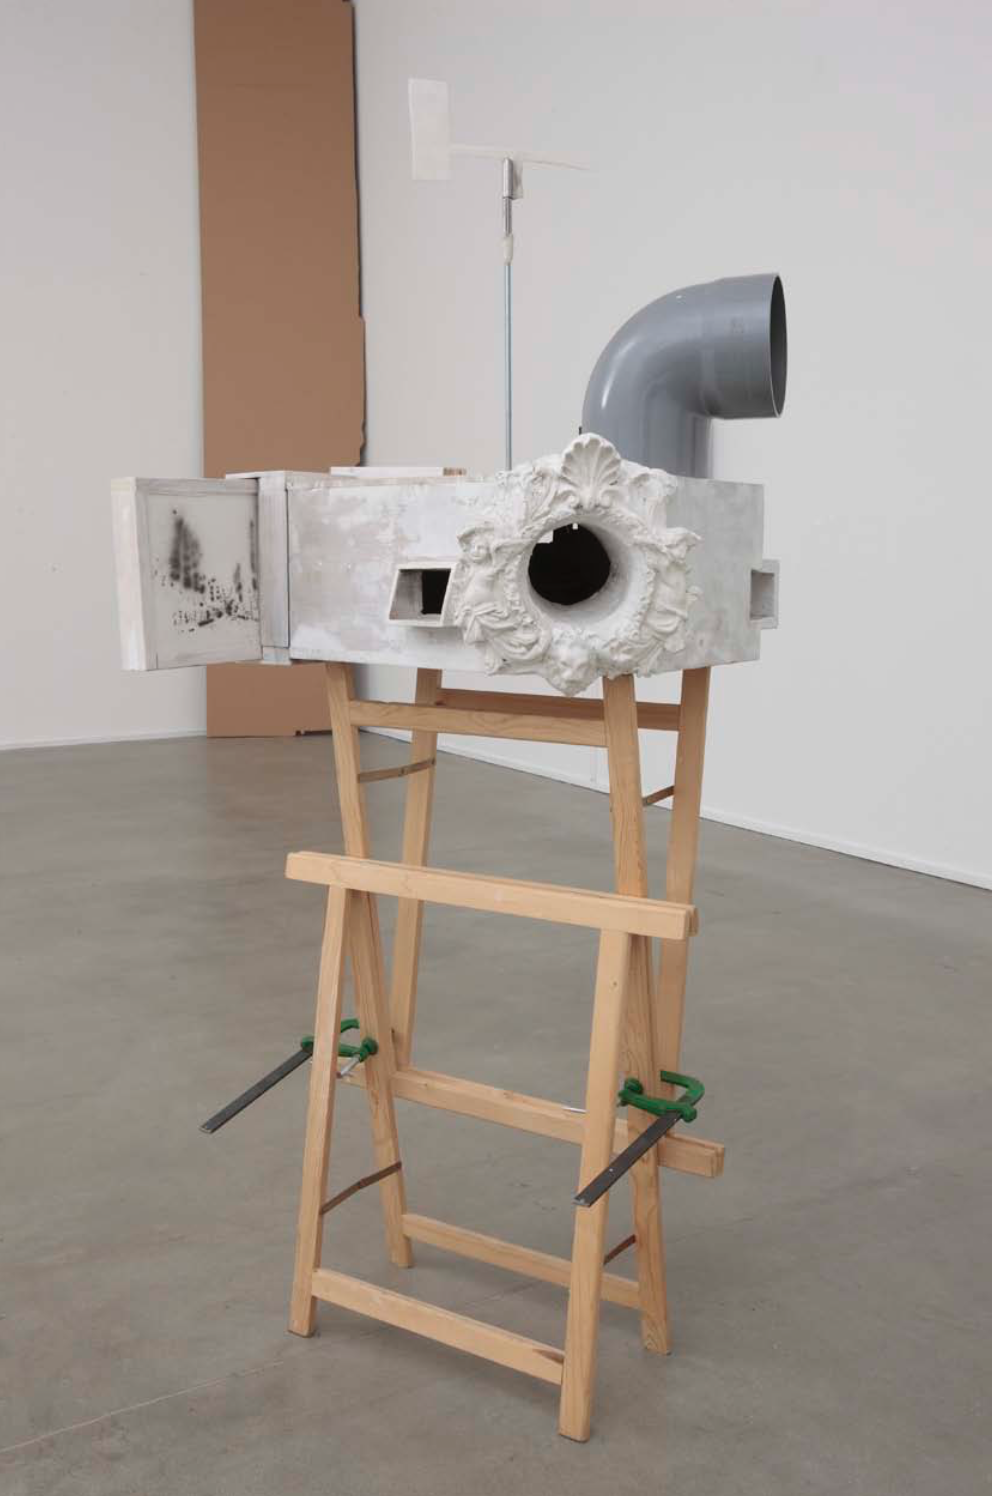 wrapped in thought, 2009 - sculpture, wood, plastic, plaster, iron, steel, paper, dust, ber 50 cmx 4